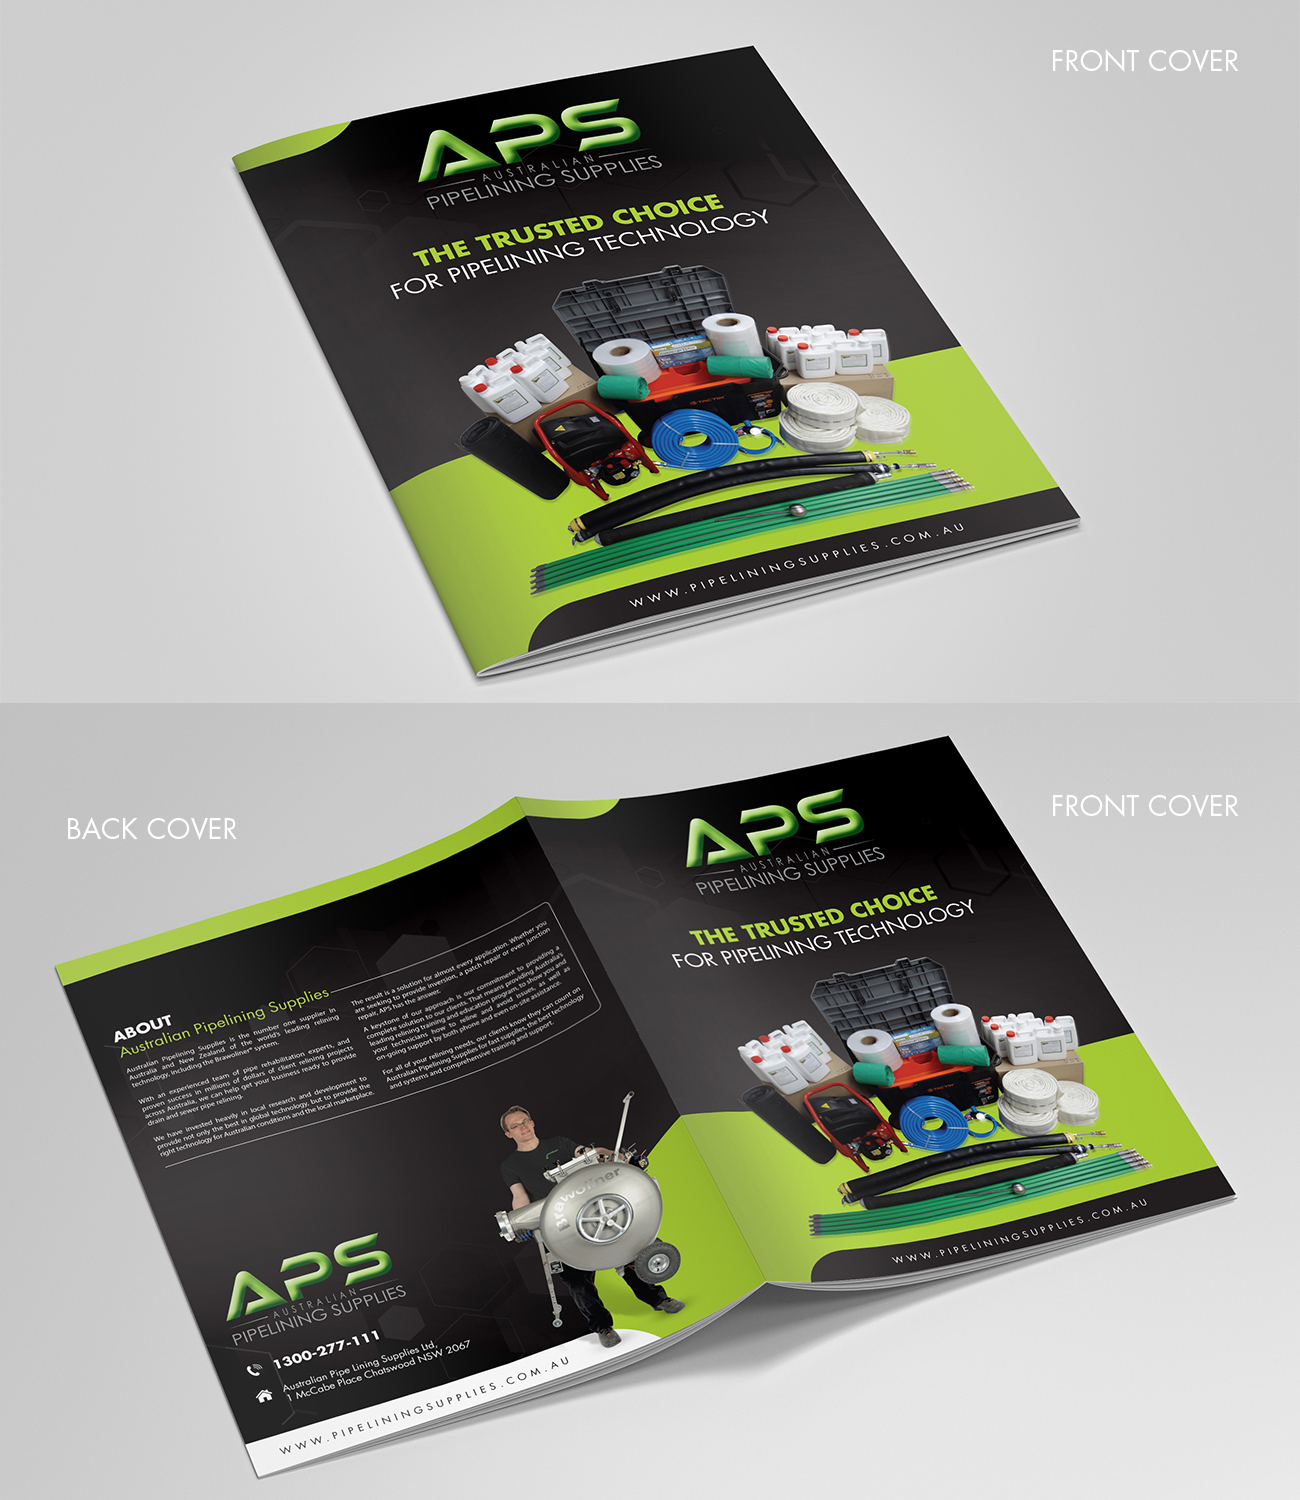 Modern Professional Plumbing Brochure Design For A Company By Debdesign Design 17859317